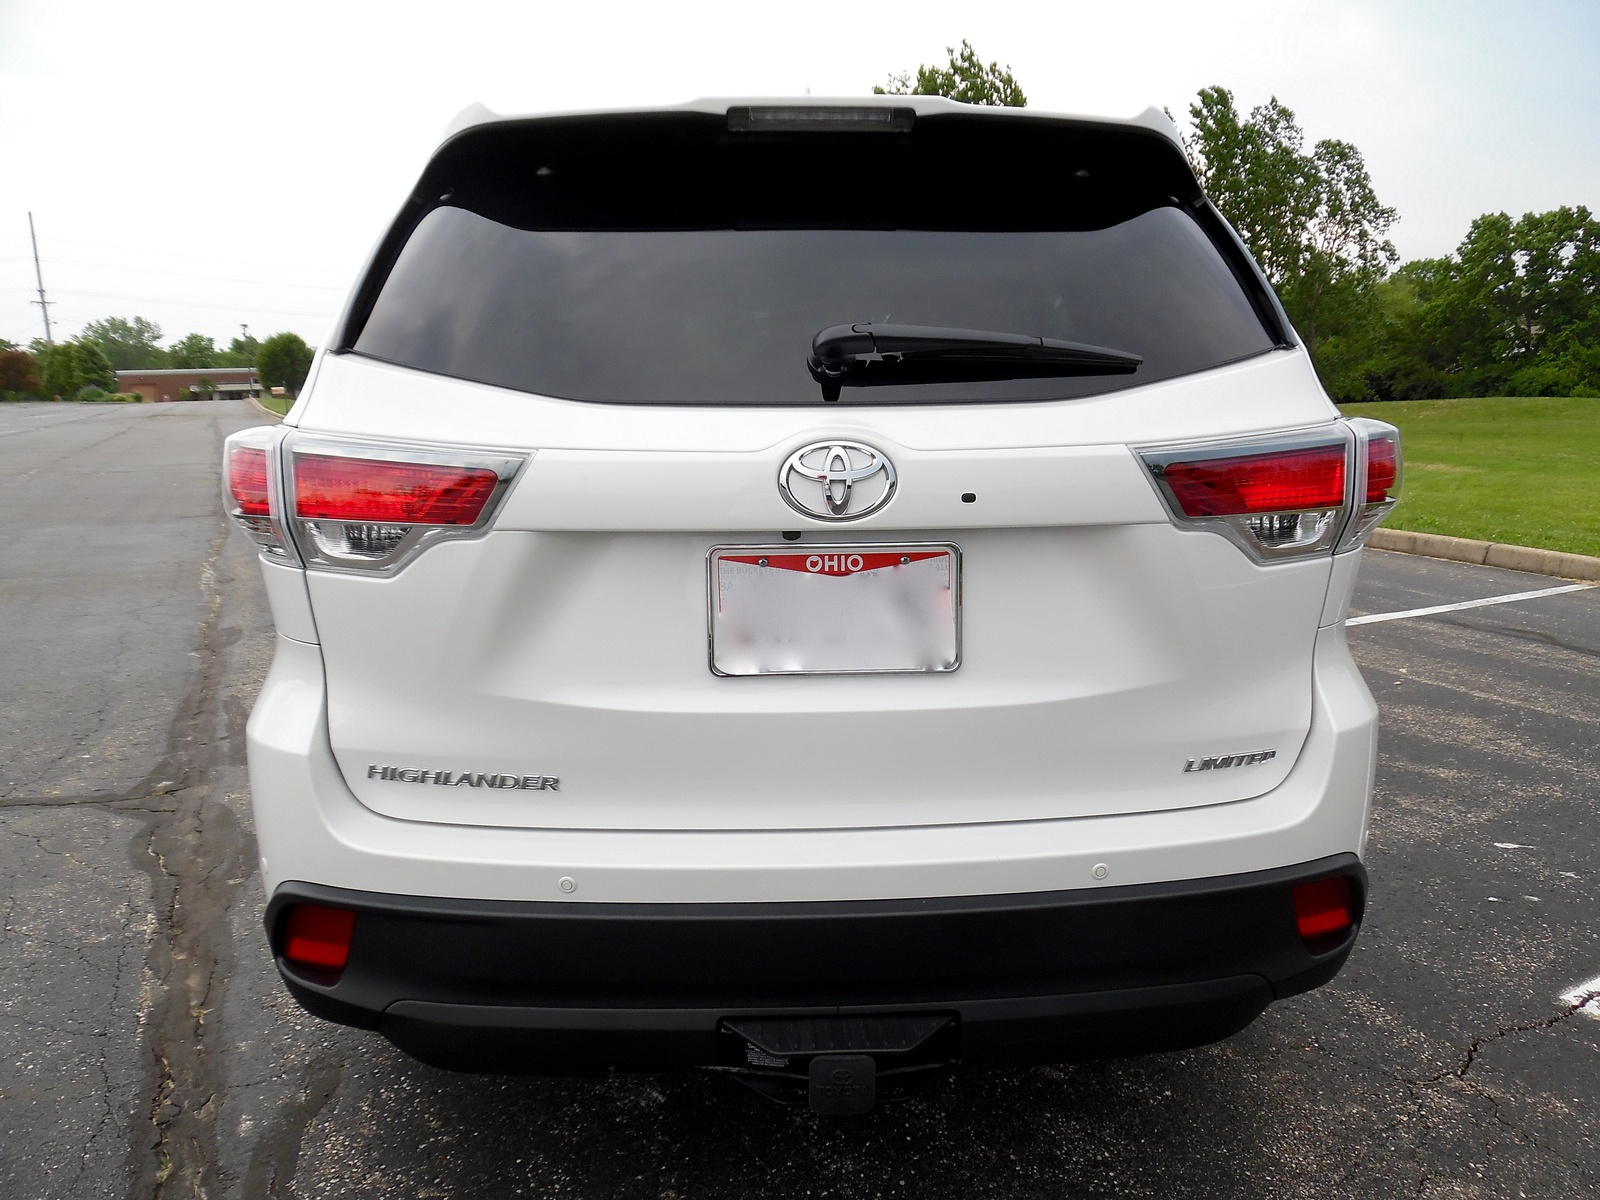 Toyota Dealers Cincinnati >> 2016 Toyota Highlander for Sale in your area - CarGurus